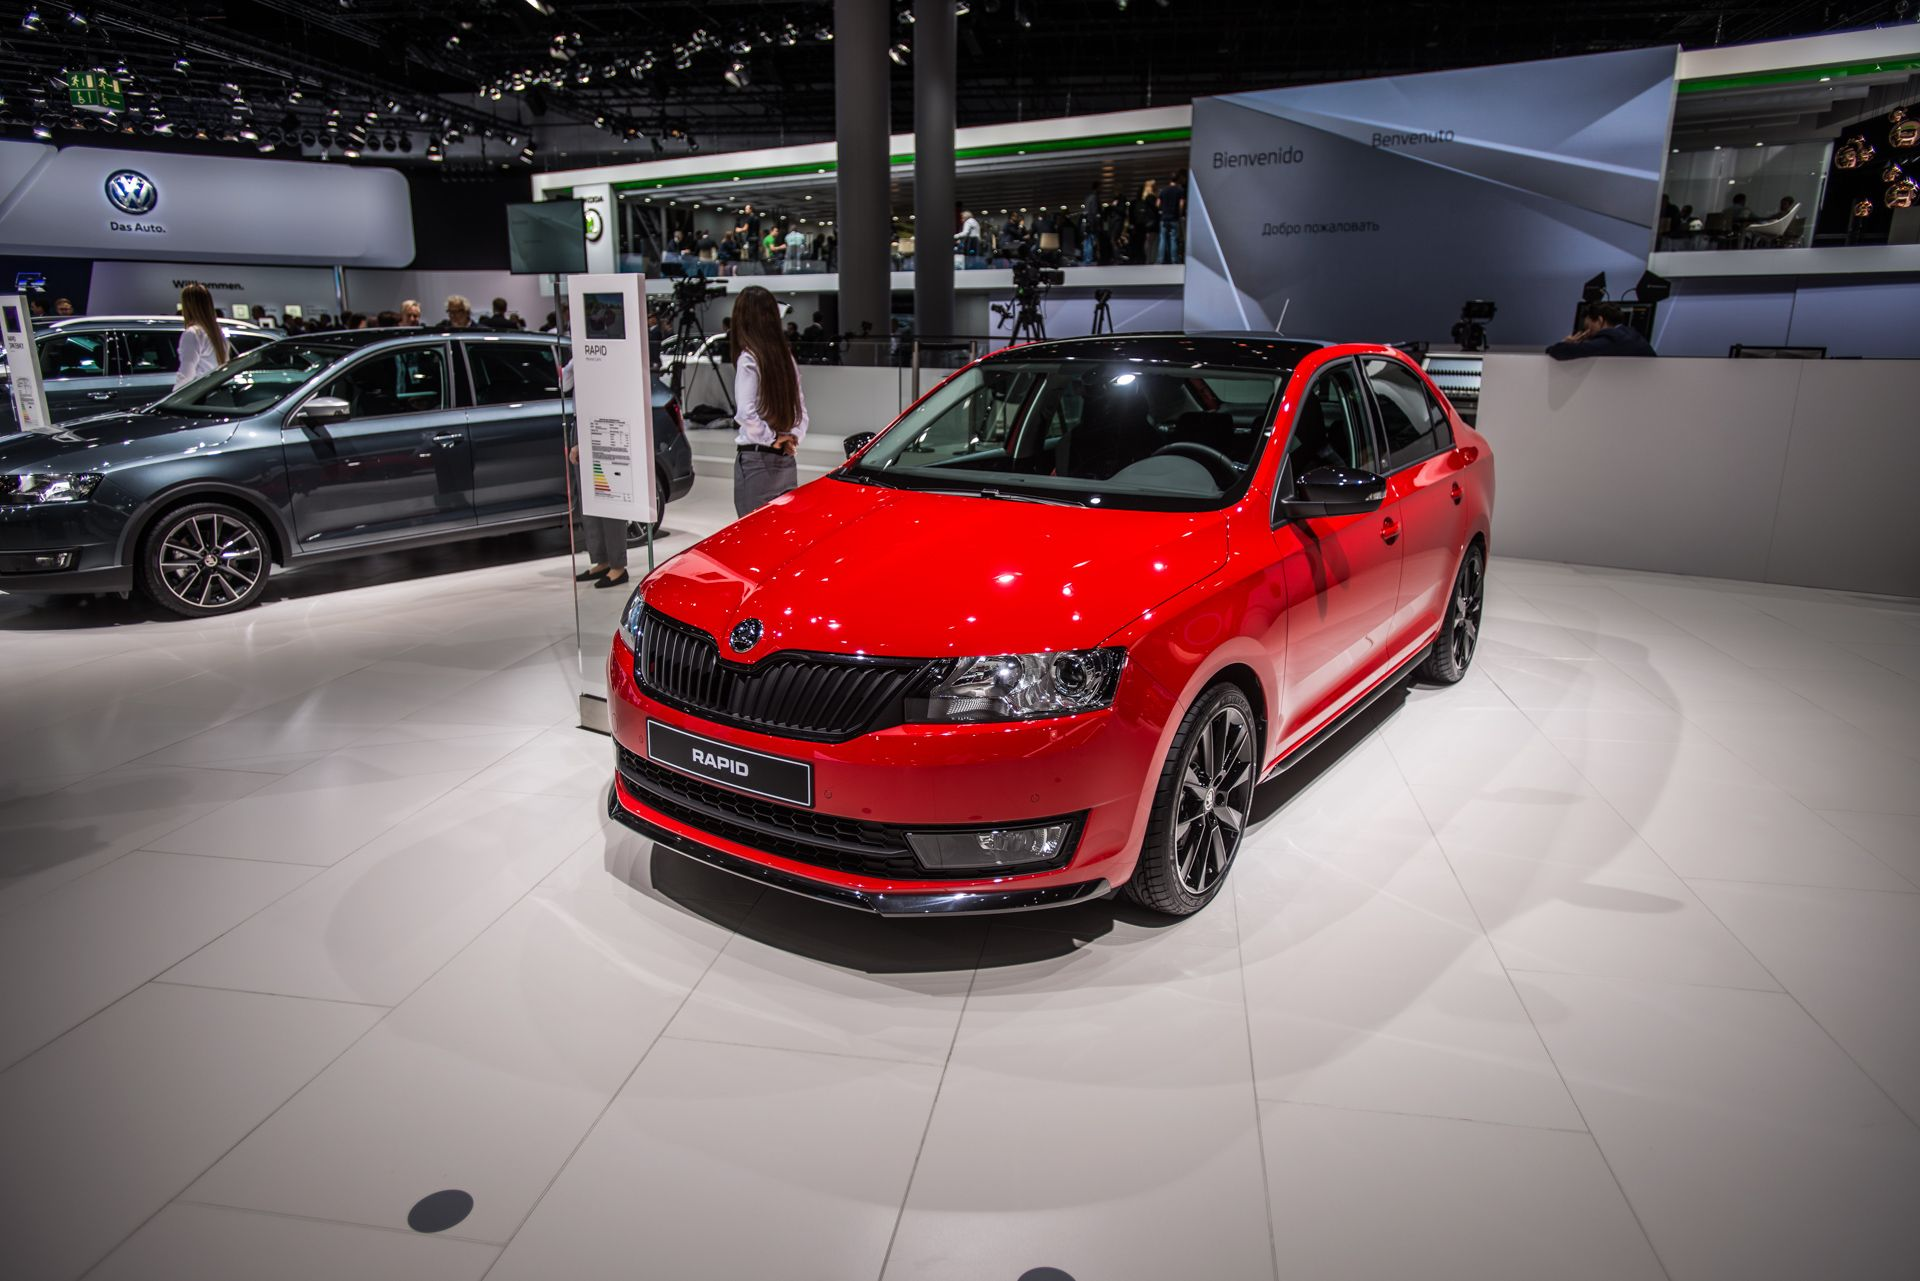 The Sporty Look Of The New Skoda Rapid Monte Carlo Skodaiaa Rapidmontecarlo Skoda Iaa2015 Skoda Future Car Monte Carlo